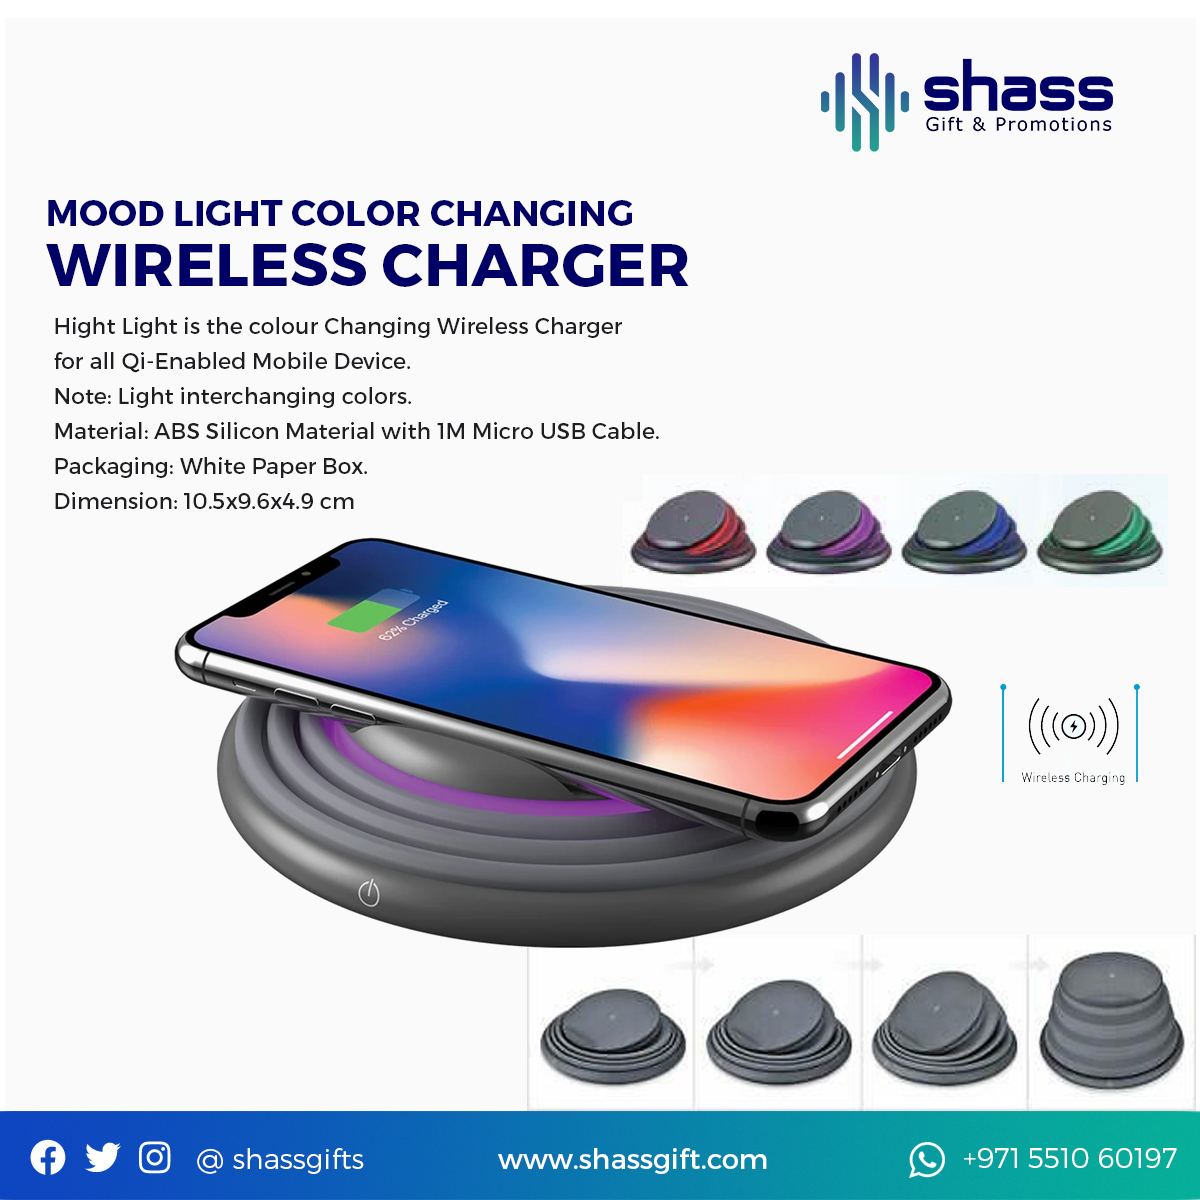 Mood Light Color Changing Wireless Charger